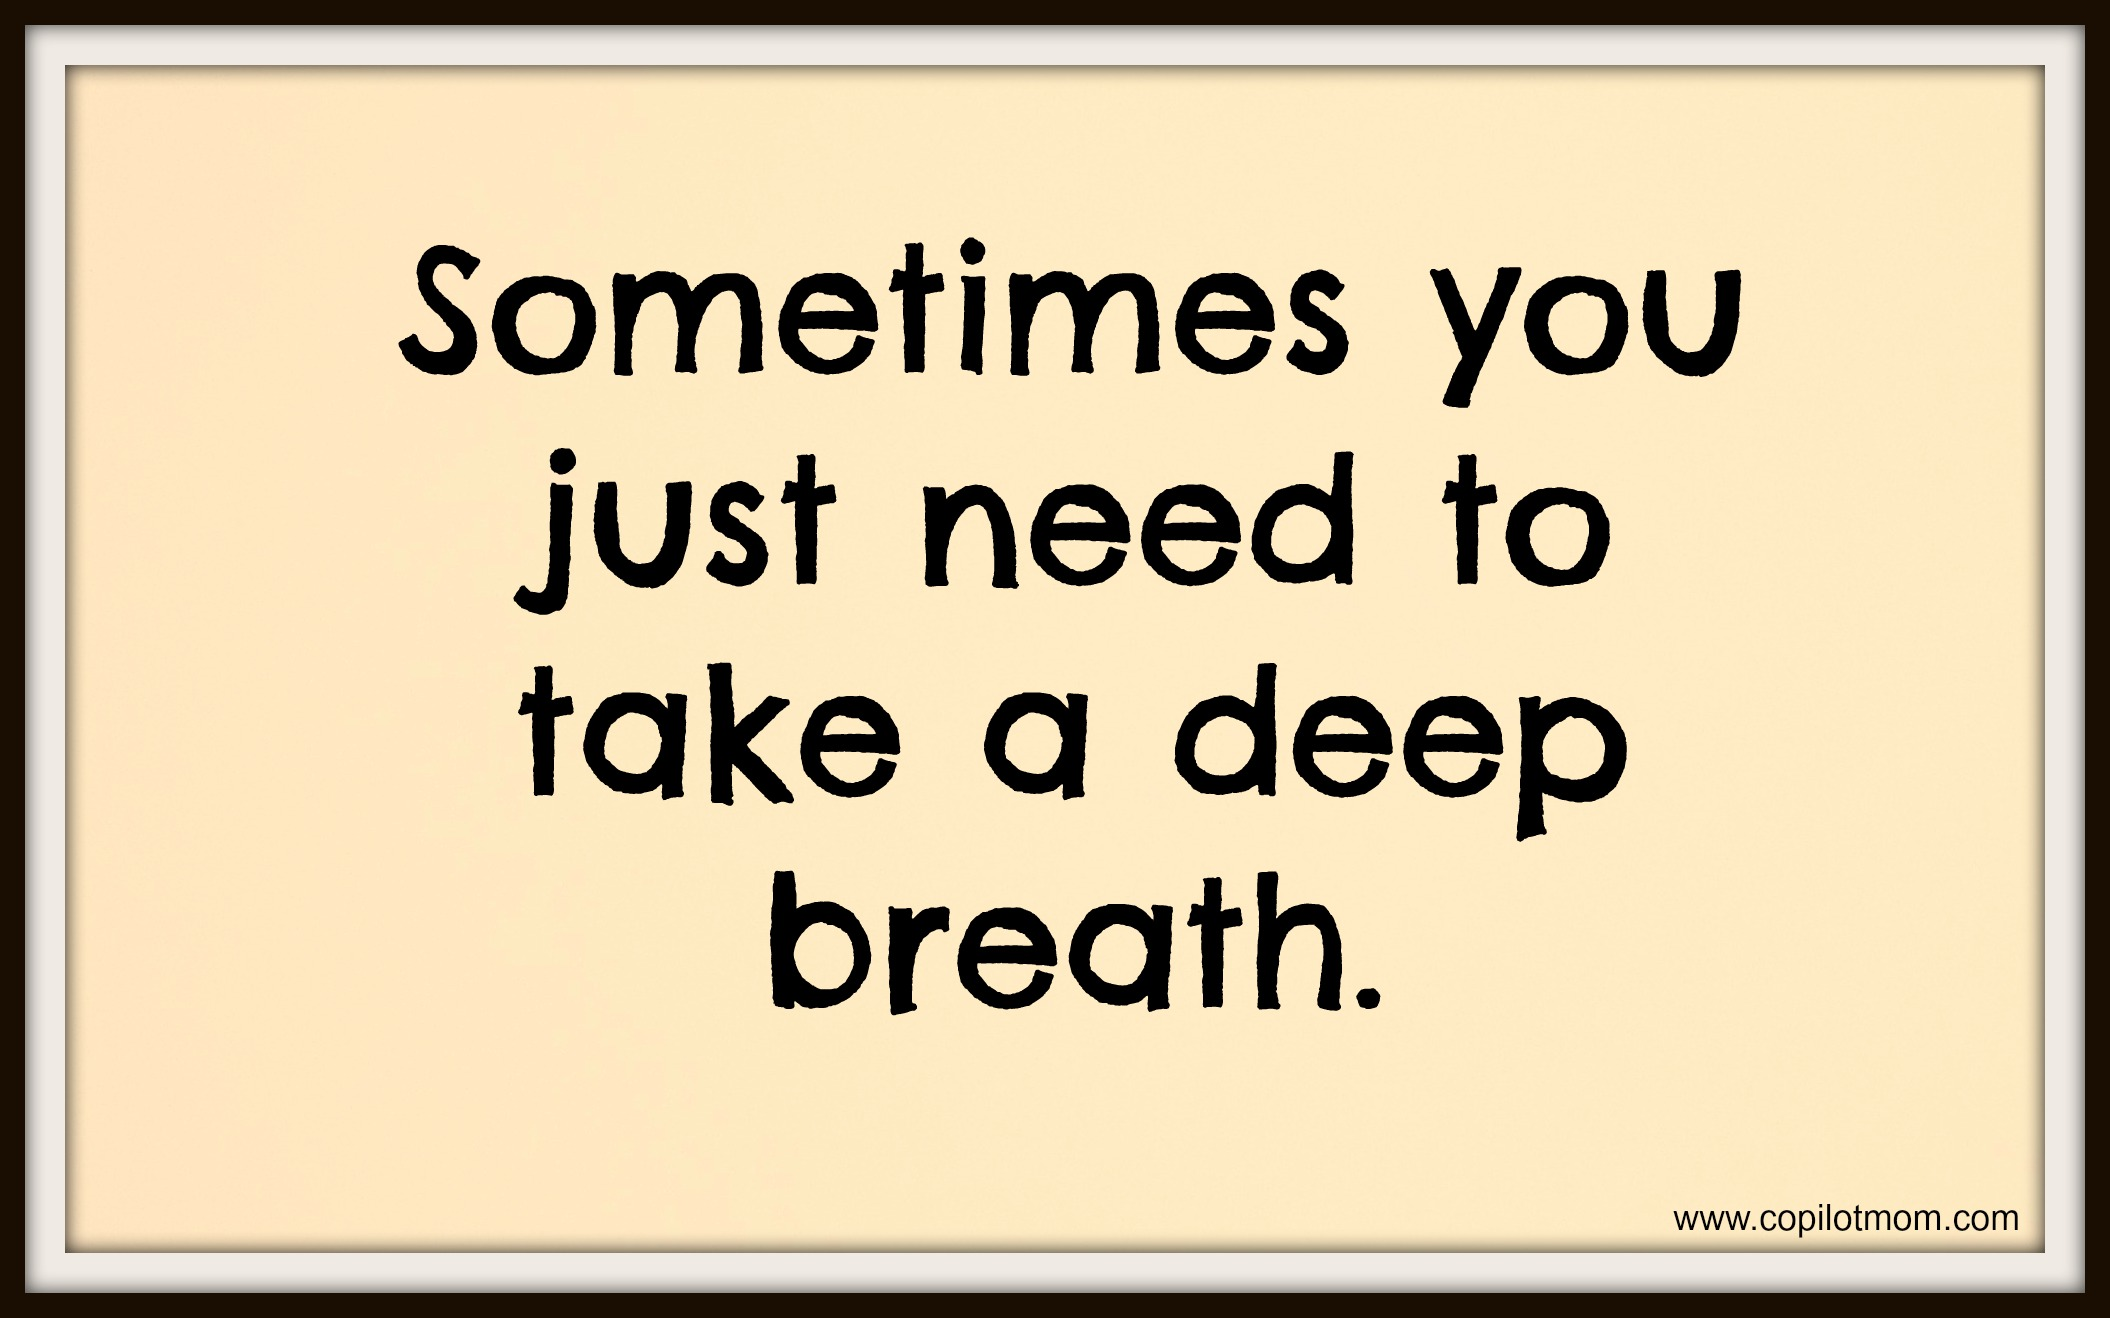 Sometimes You Just Need To Take a Deep Breath